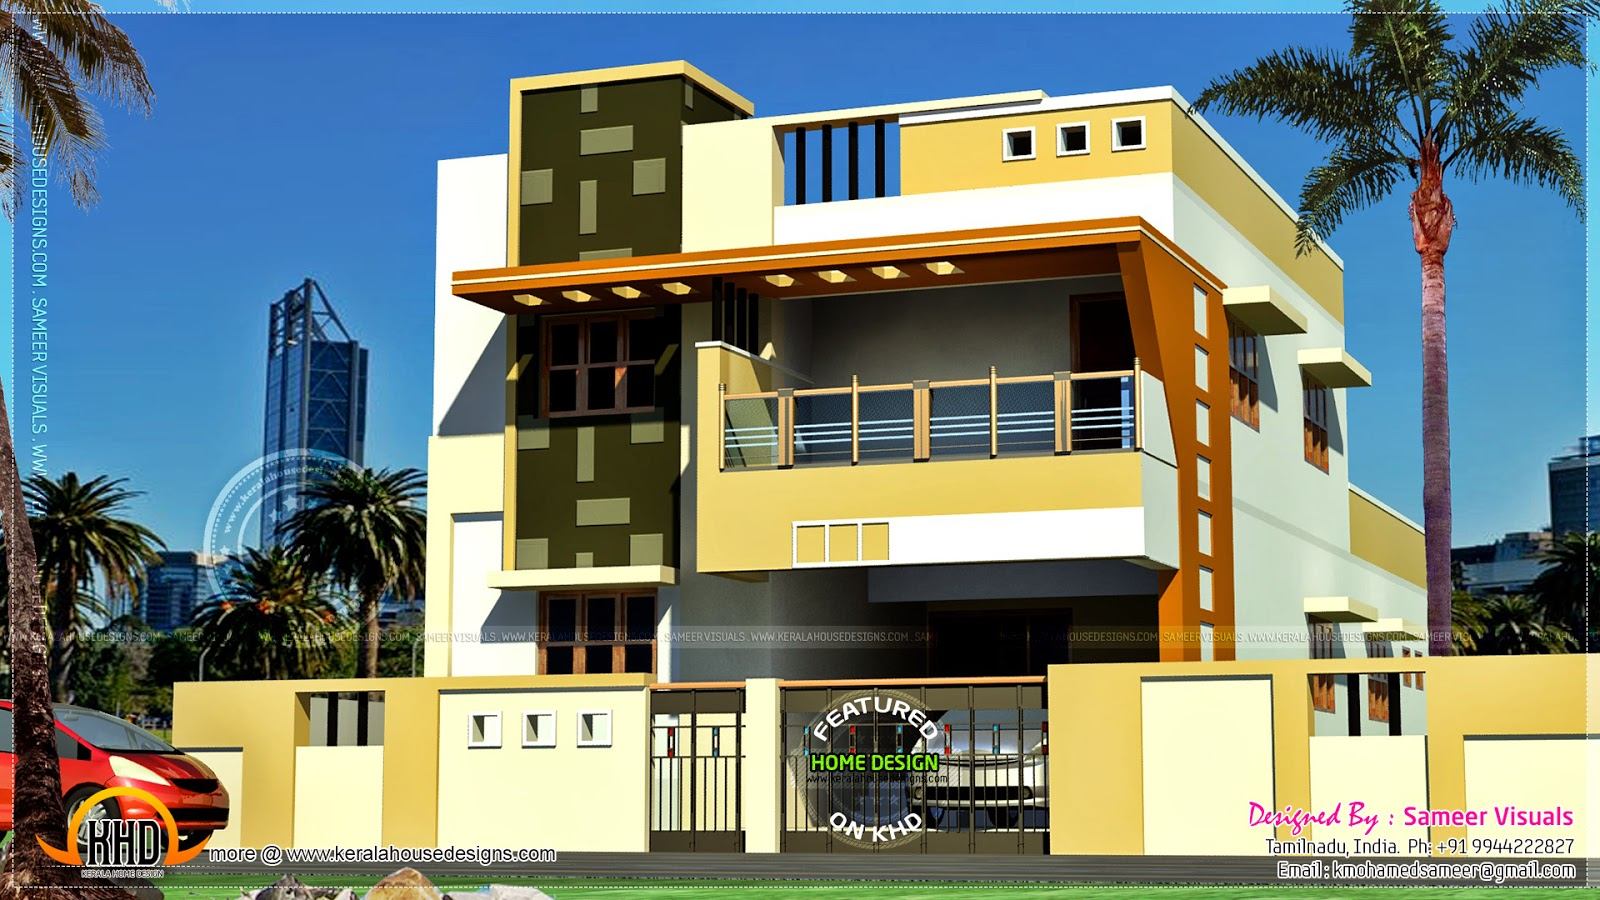 Modern south indian house design kerala home design and for Tamilnadu home design photos